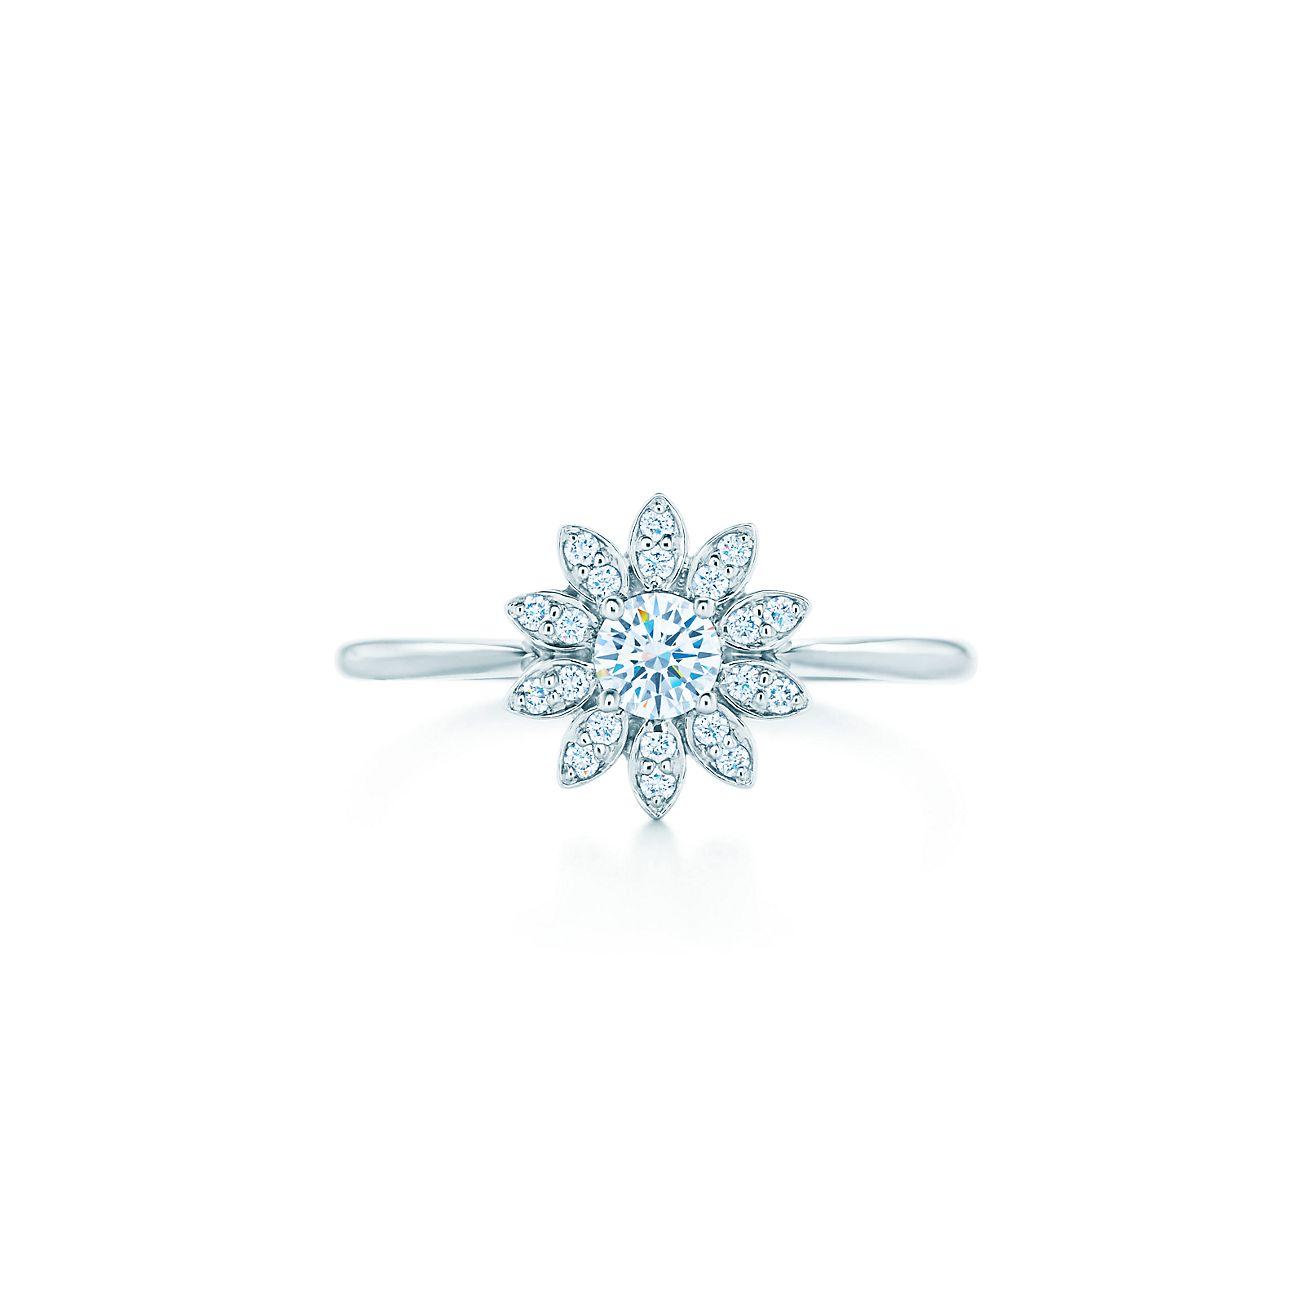 Tiffany Enchant flower ring in platinum with diamonds